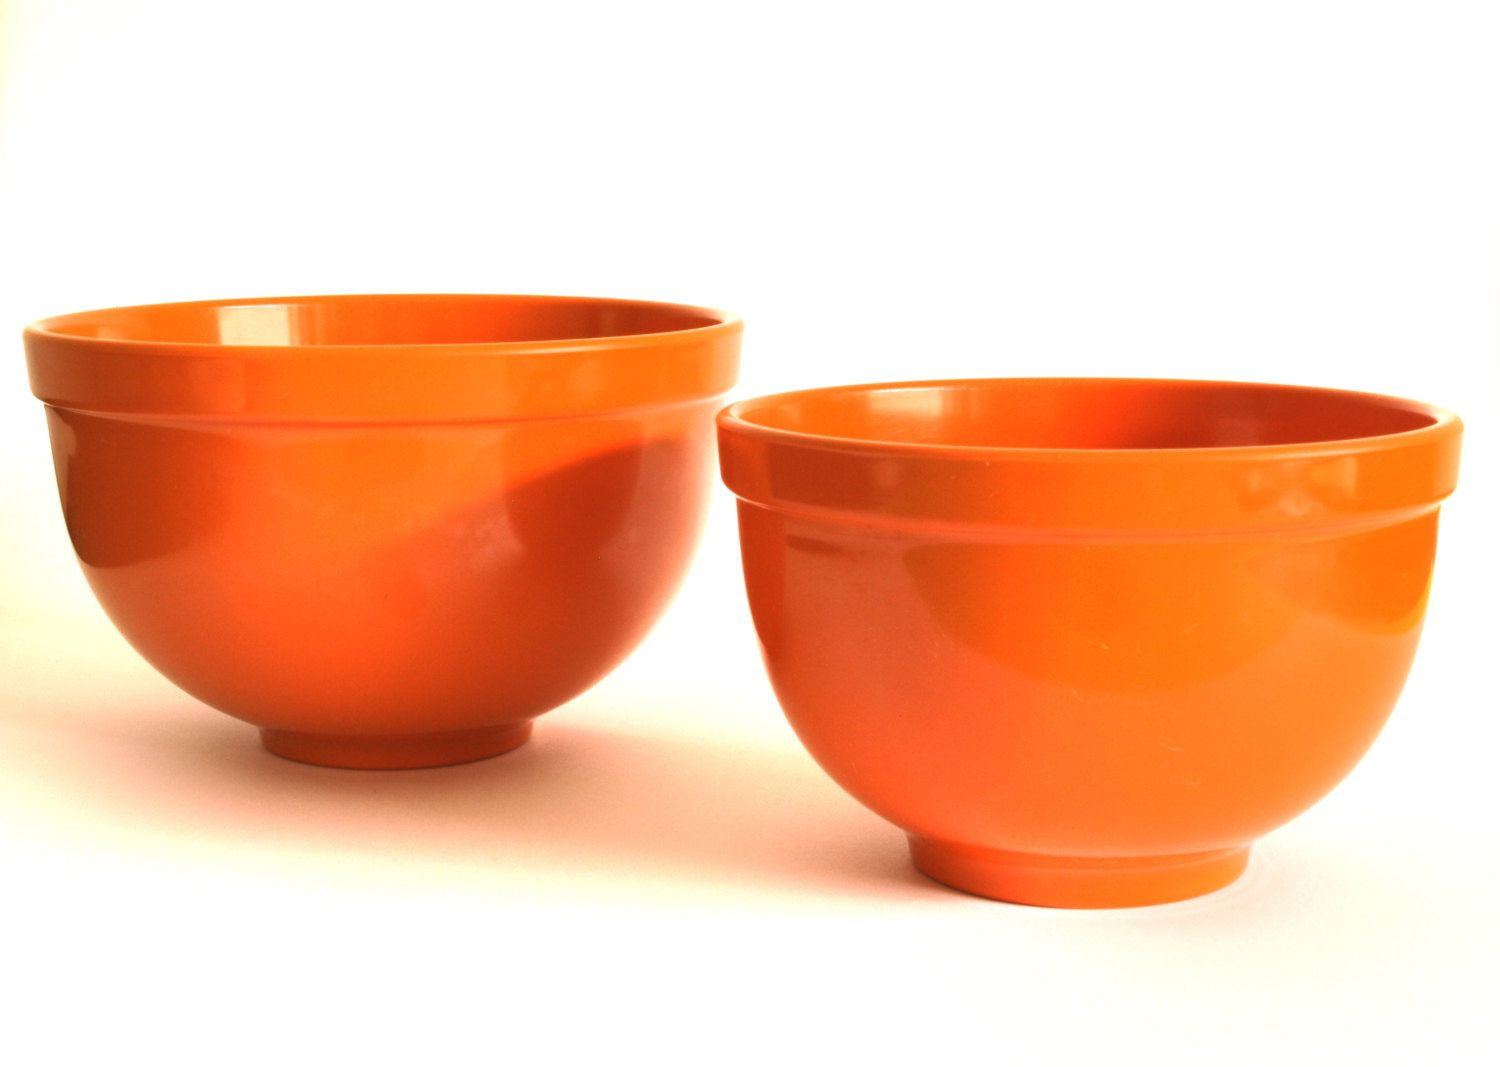 retro vintage melmac hollywood bright orange mixing bowls set of two 60s melamine bowls made by formline